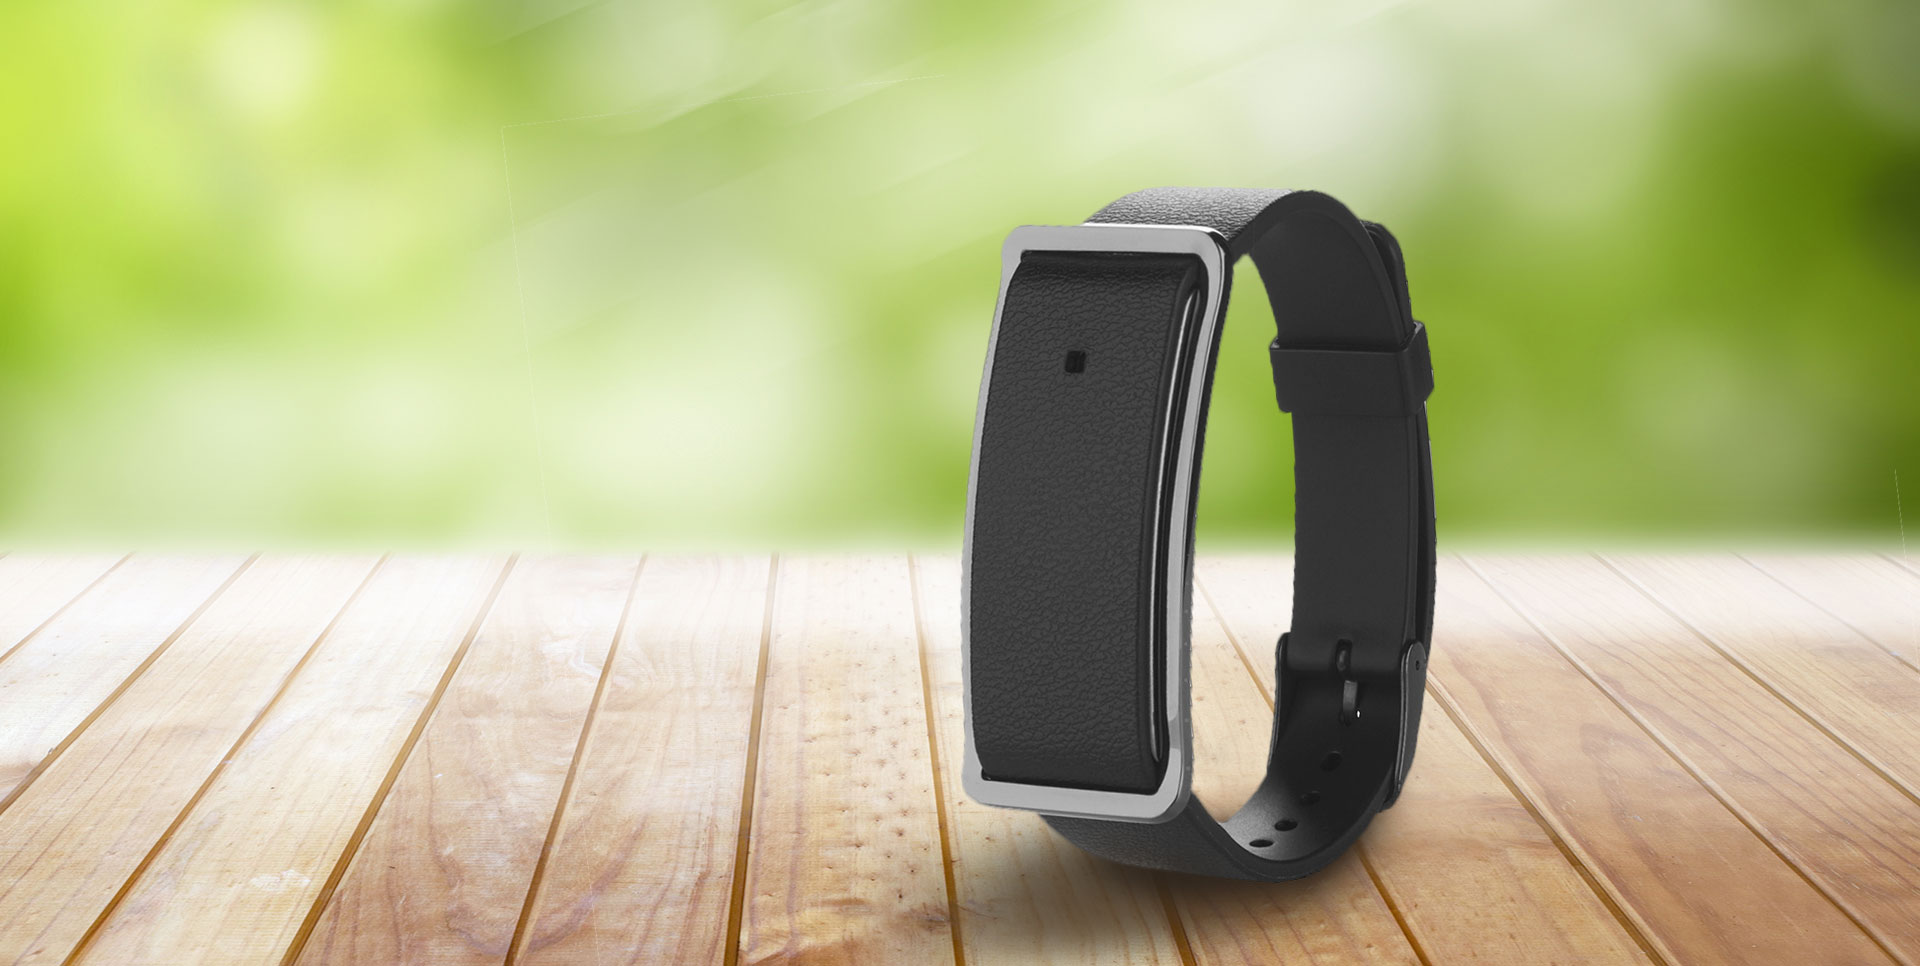 Silvercrest Lidl Opiniones Reviewed Lidl S 25 Silvercrest Fitness Activity Tracker Which